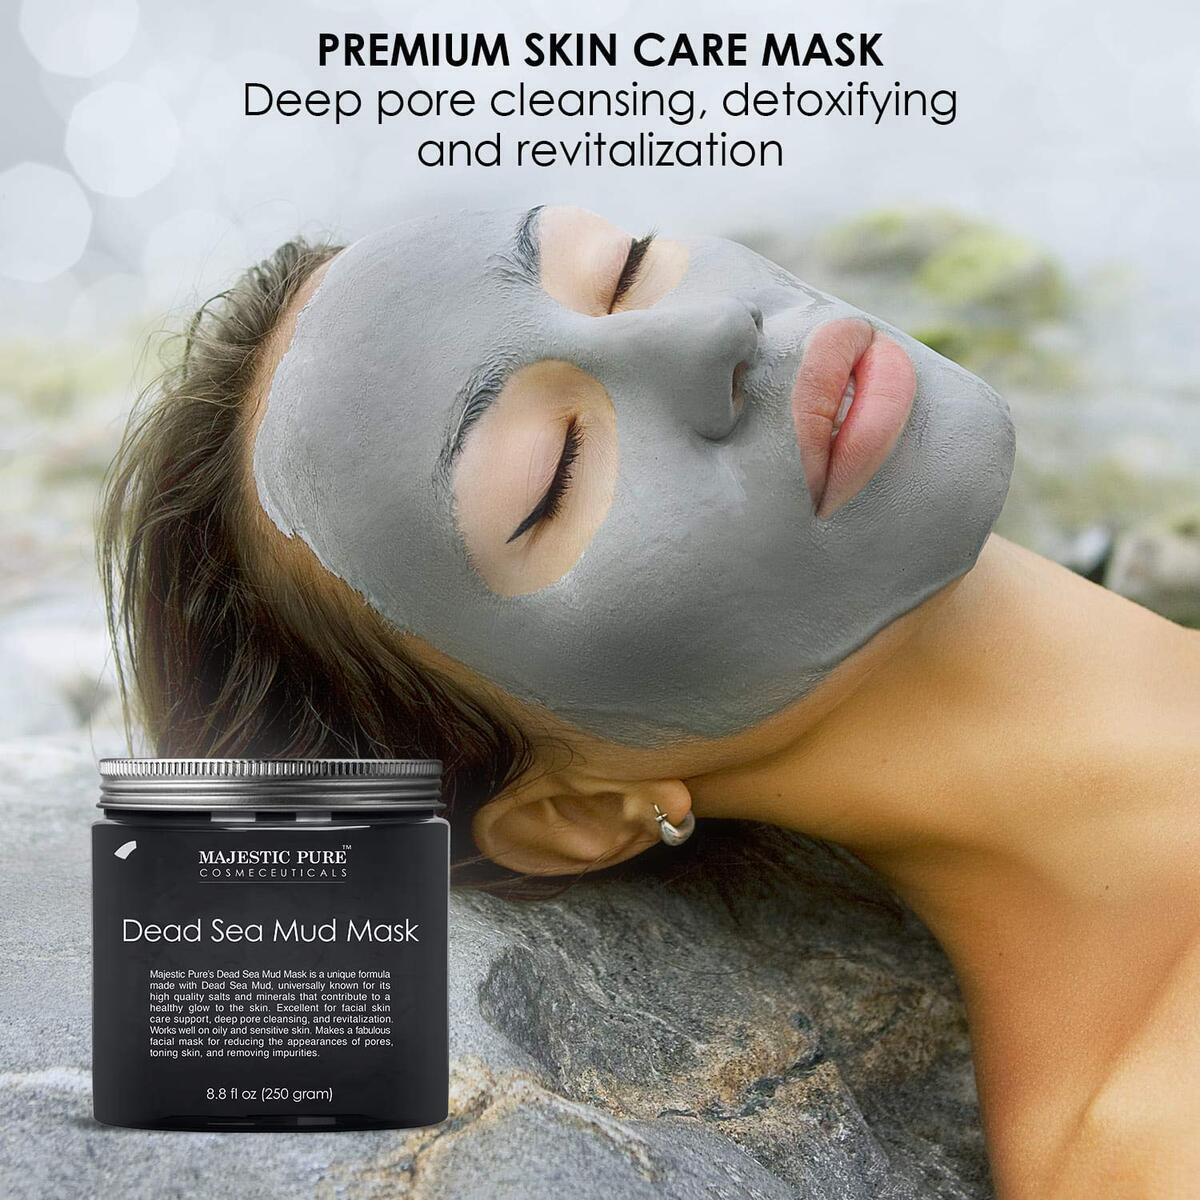 Dead Sea Mud Mask - Natural Face and Skin Care for Women and Men - Best Black Facial Cleansing Clay for Blackhead, Whitehead, Acne and Pores - 8.8 fl. Oz